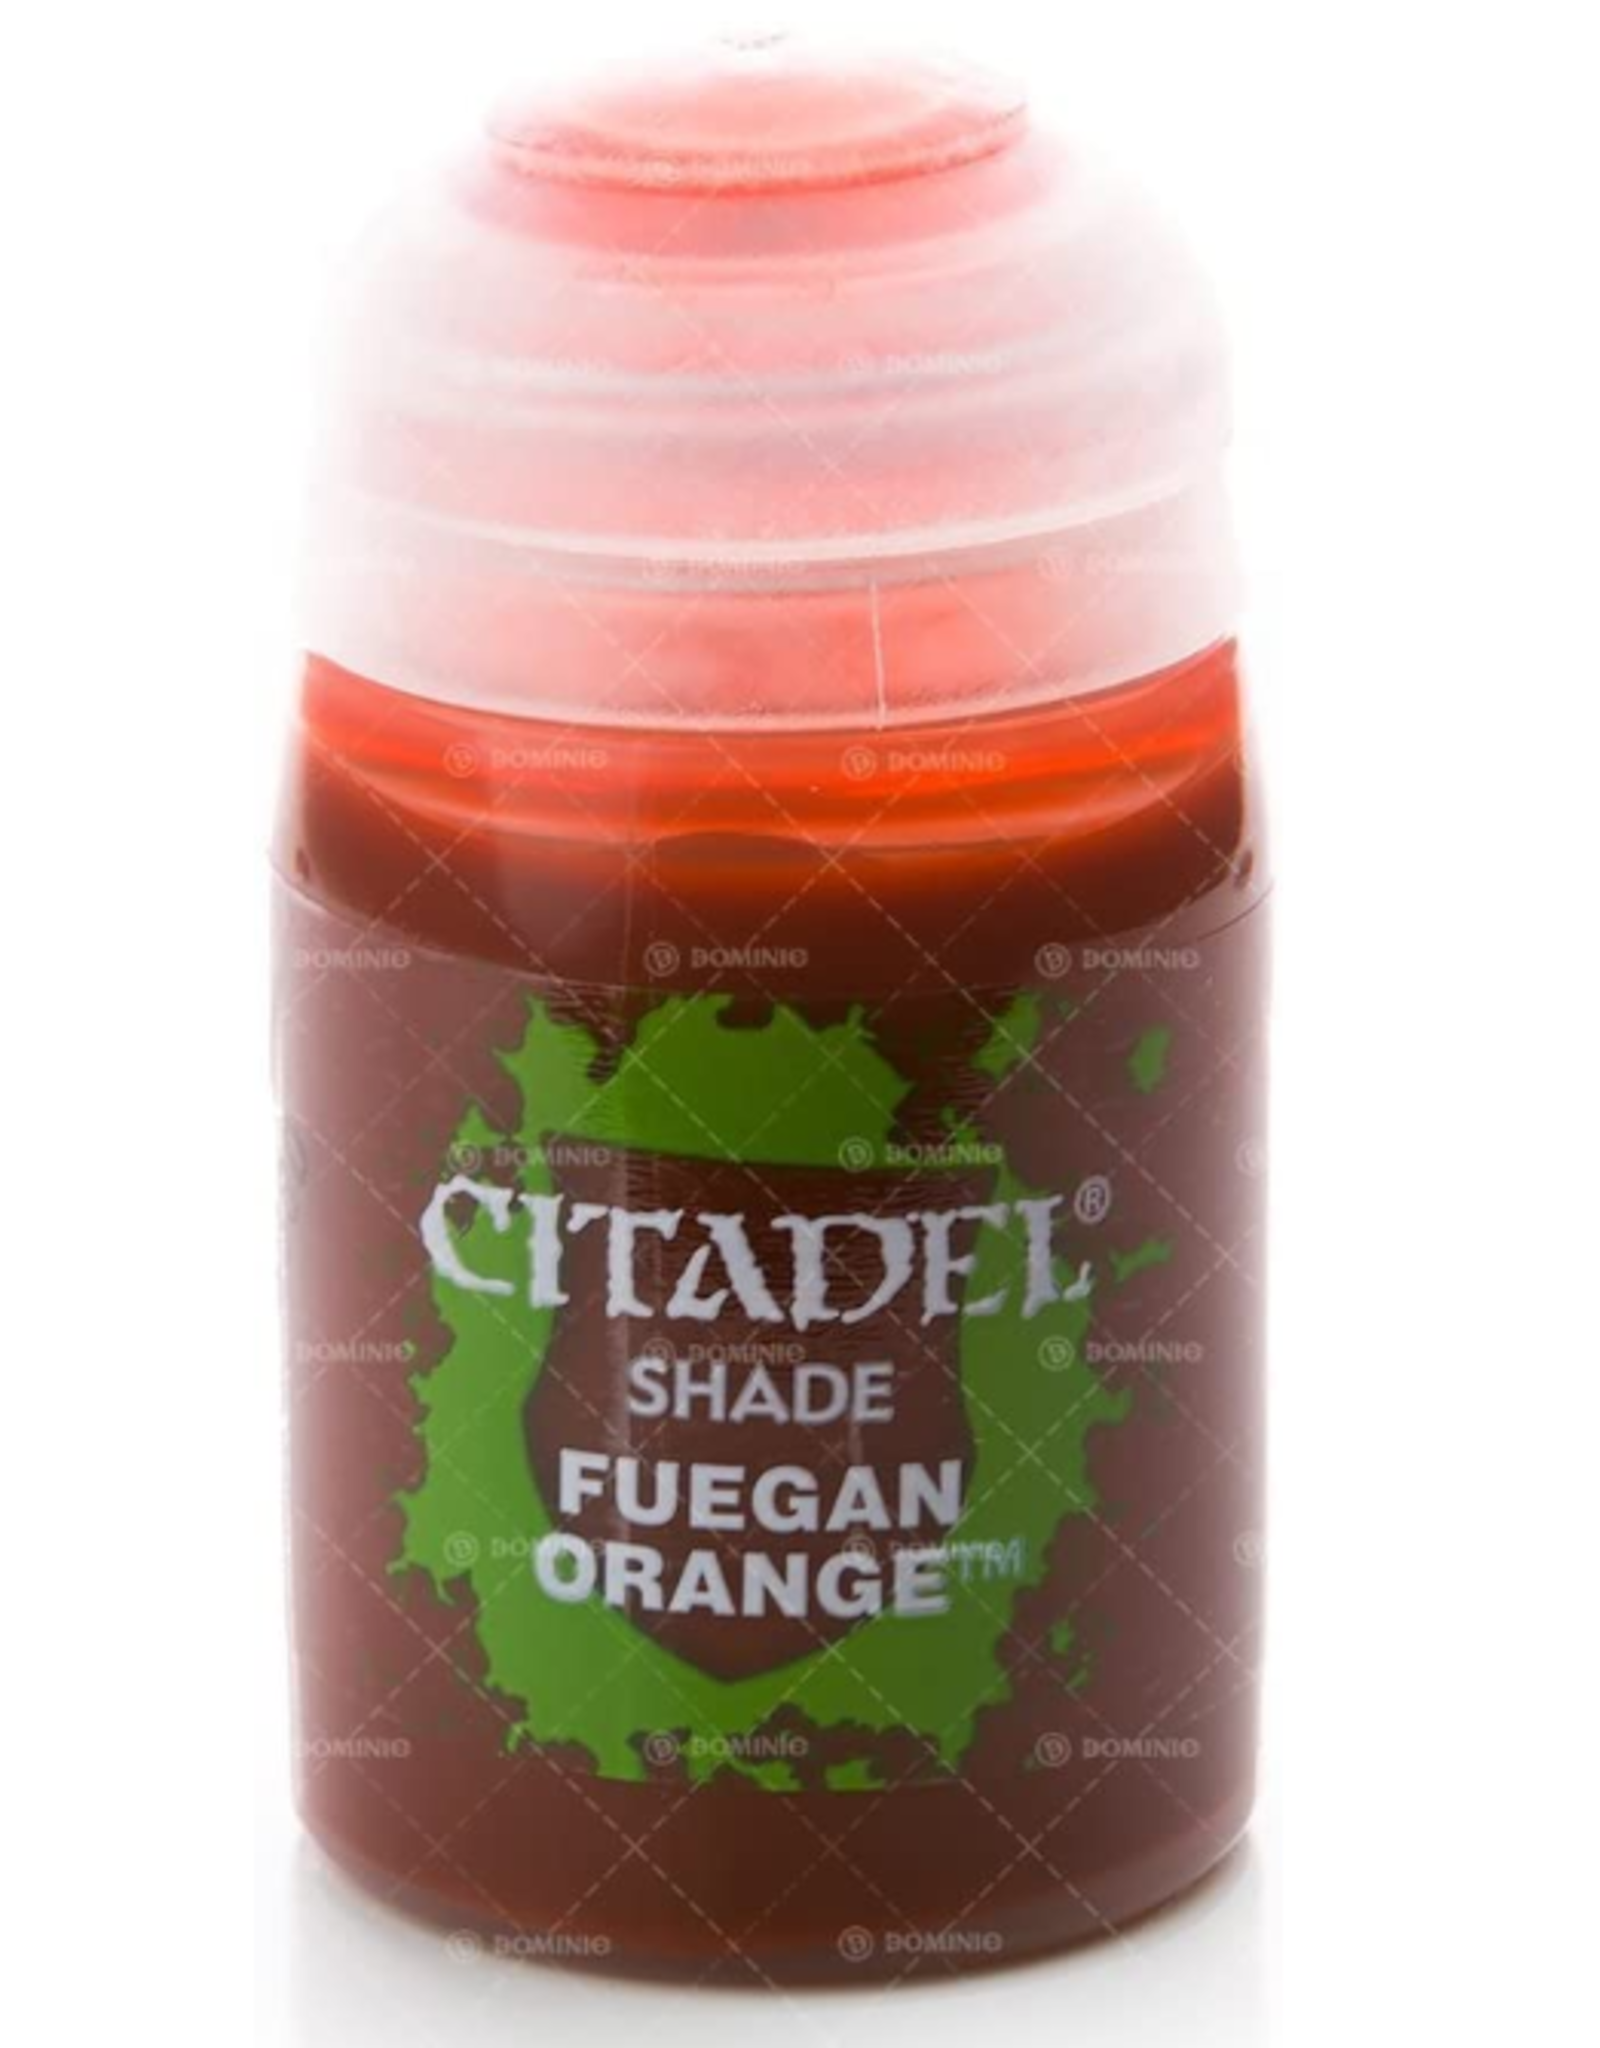 Games Workshop Citadel Shade Fuegan Orange (24ML)